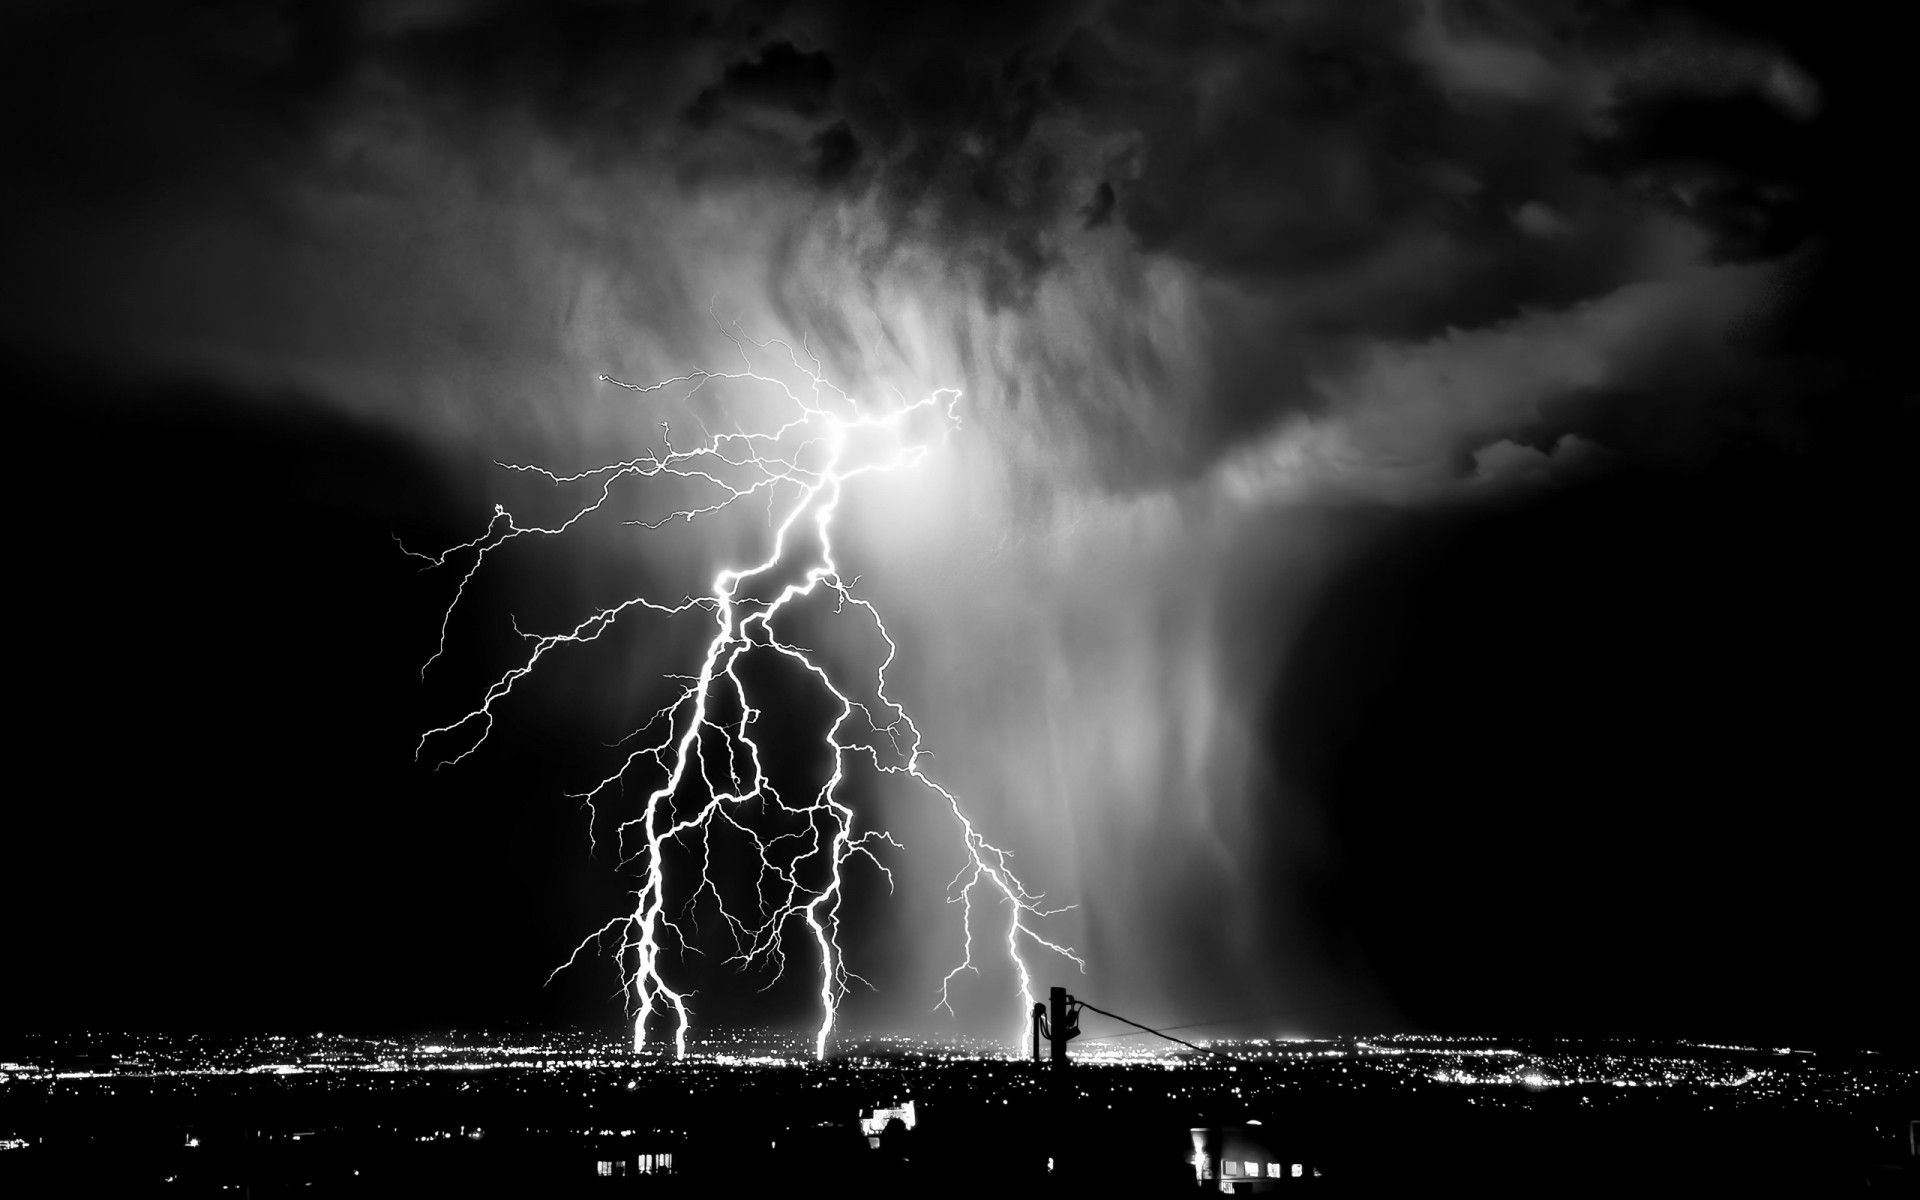 Massive Lightning Android Wallpapers Lightning Photography Lightning Cloud Lightning Images